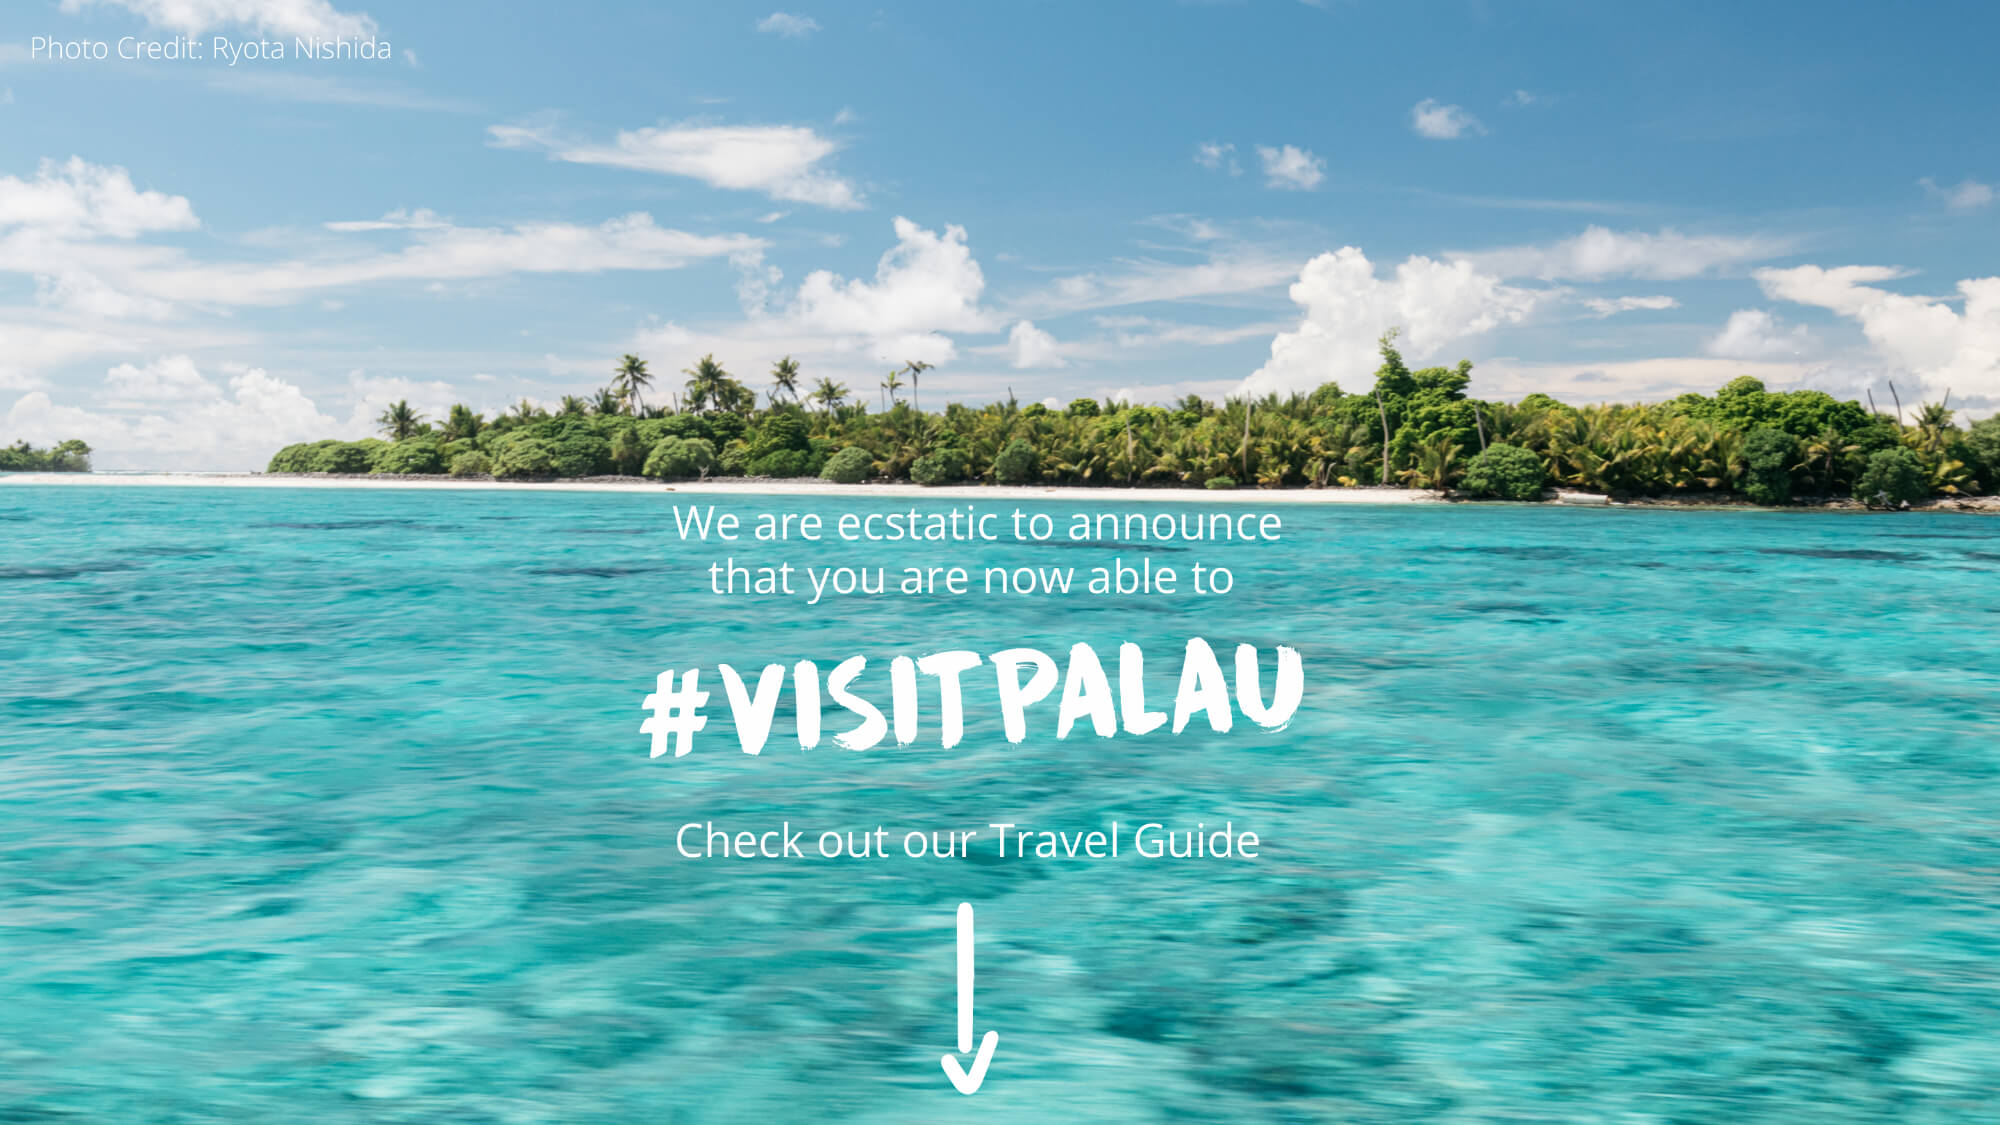 How to Visit Palau - Entry Requirements1